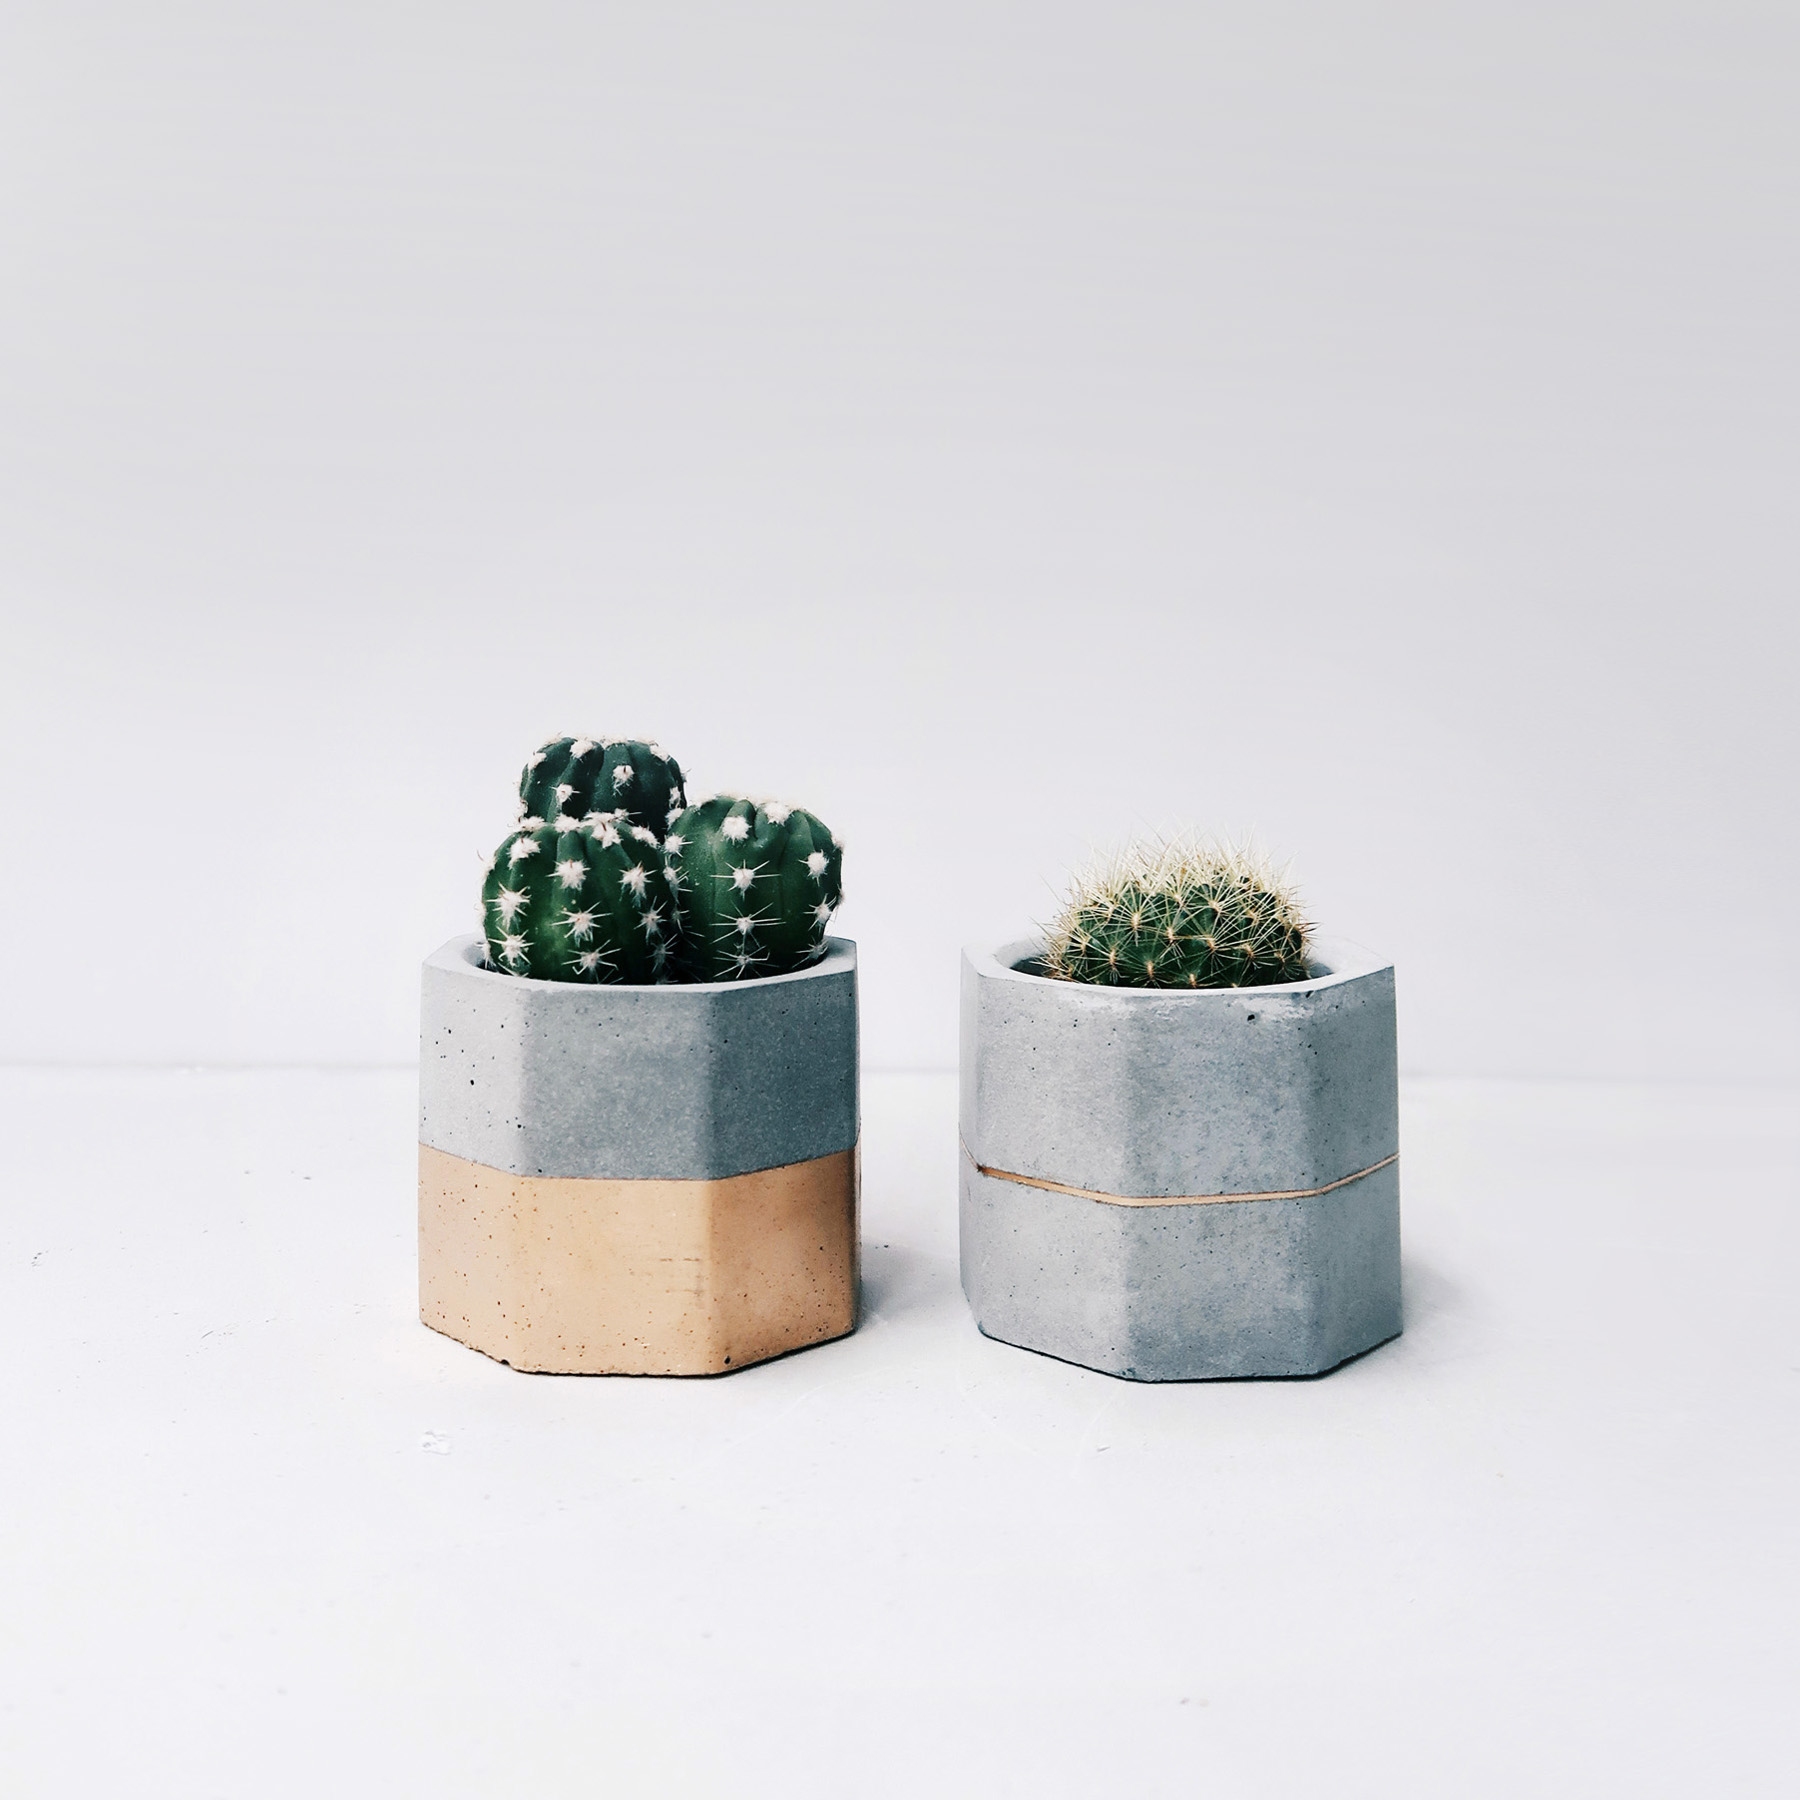 GOLDEN JUBILEE 金色陛下多肉幾何水泥盆栽組 / Succulent Concrete planter set